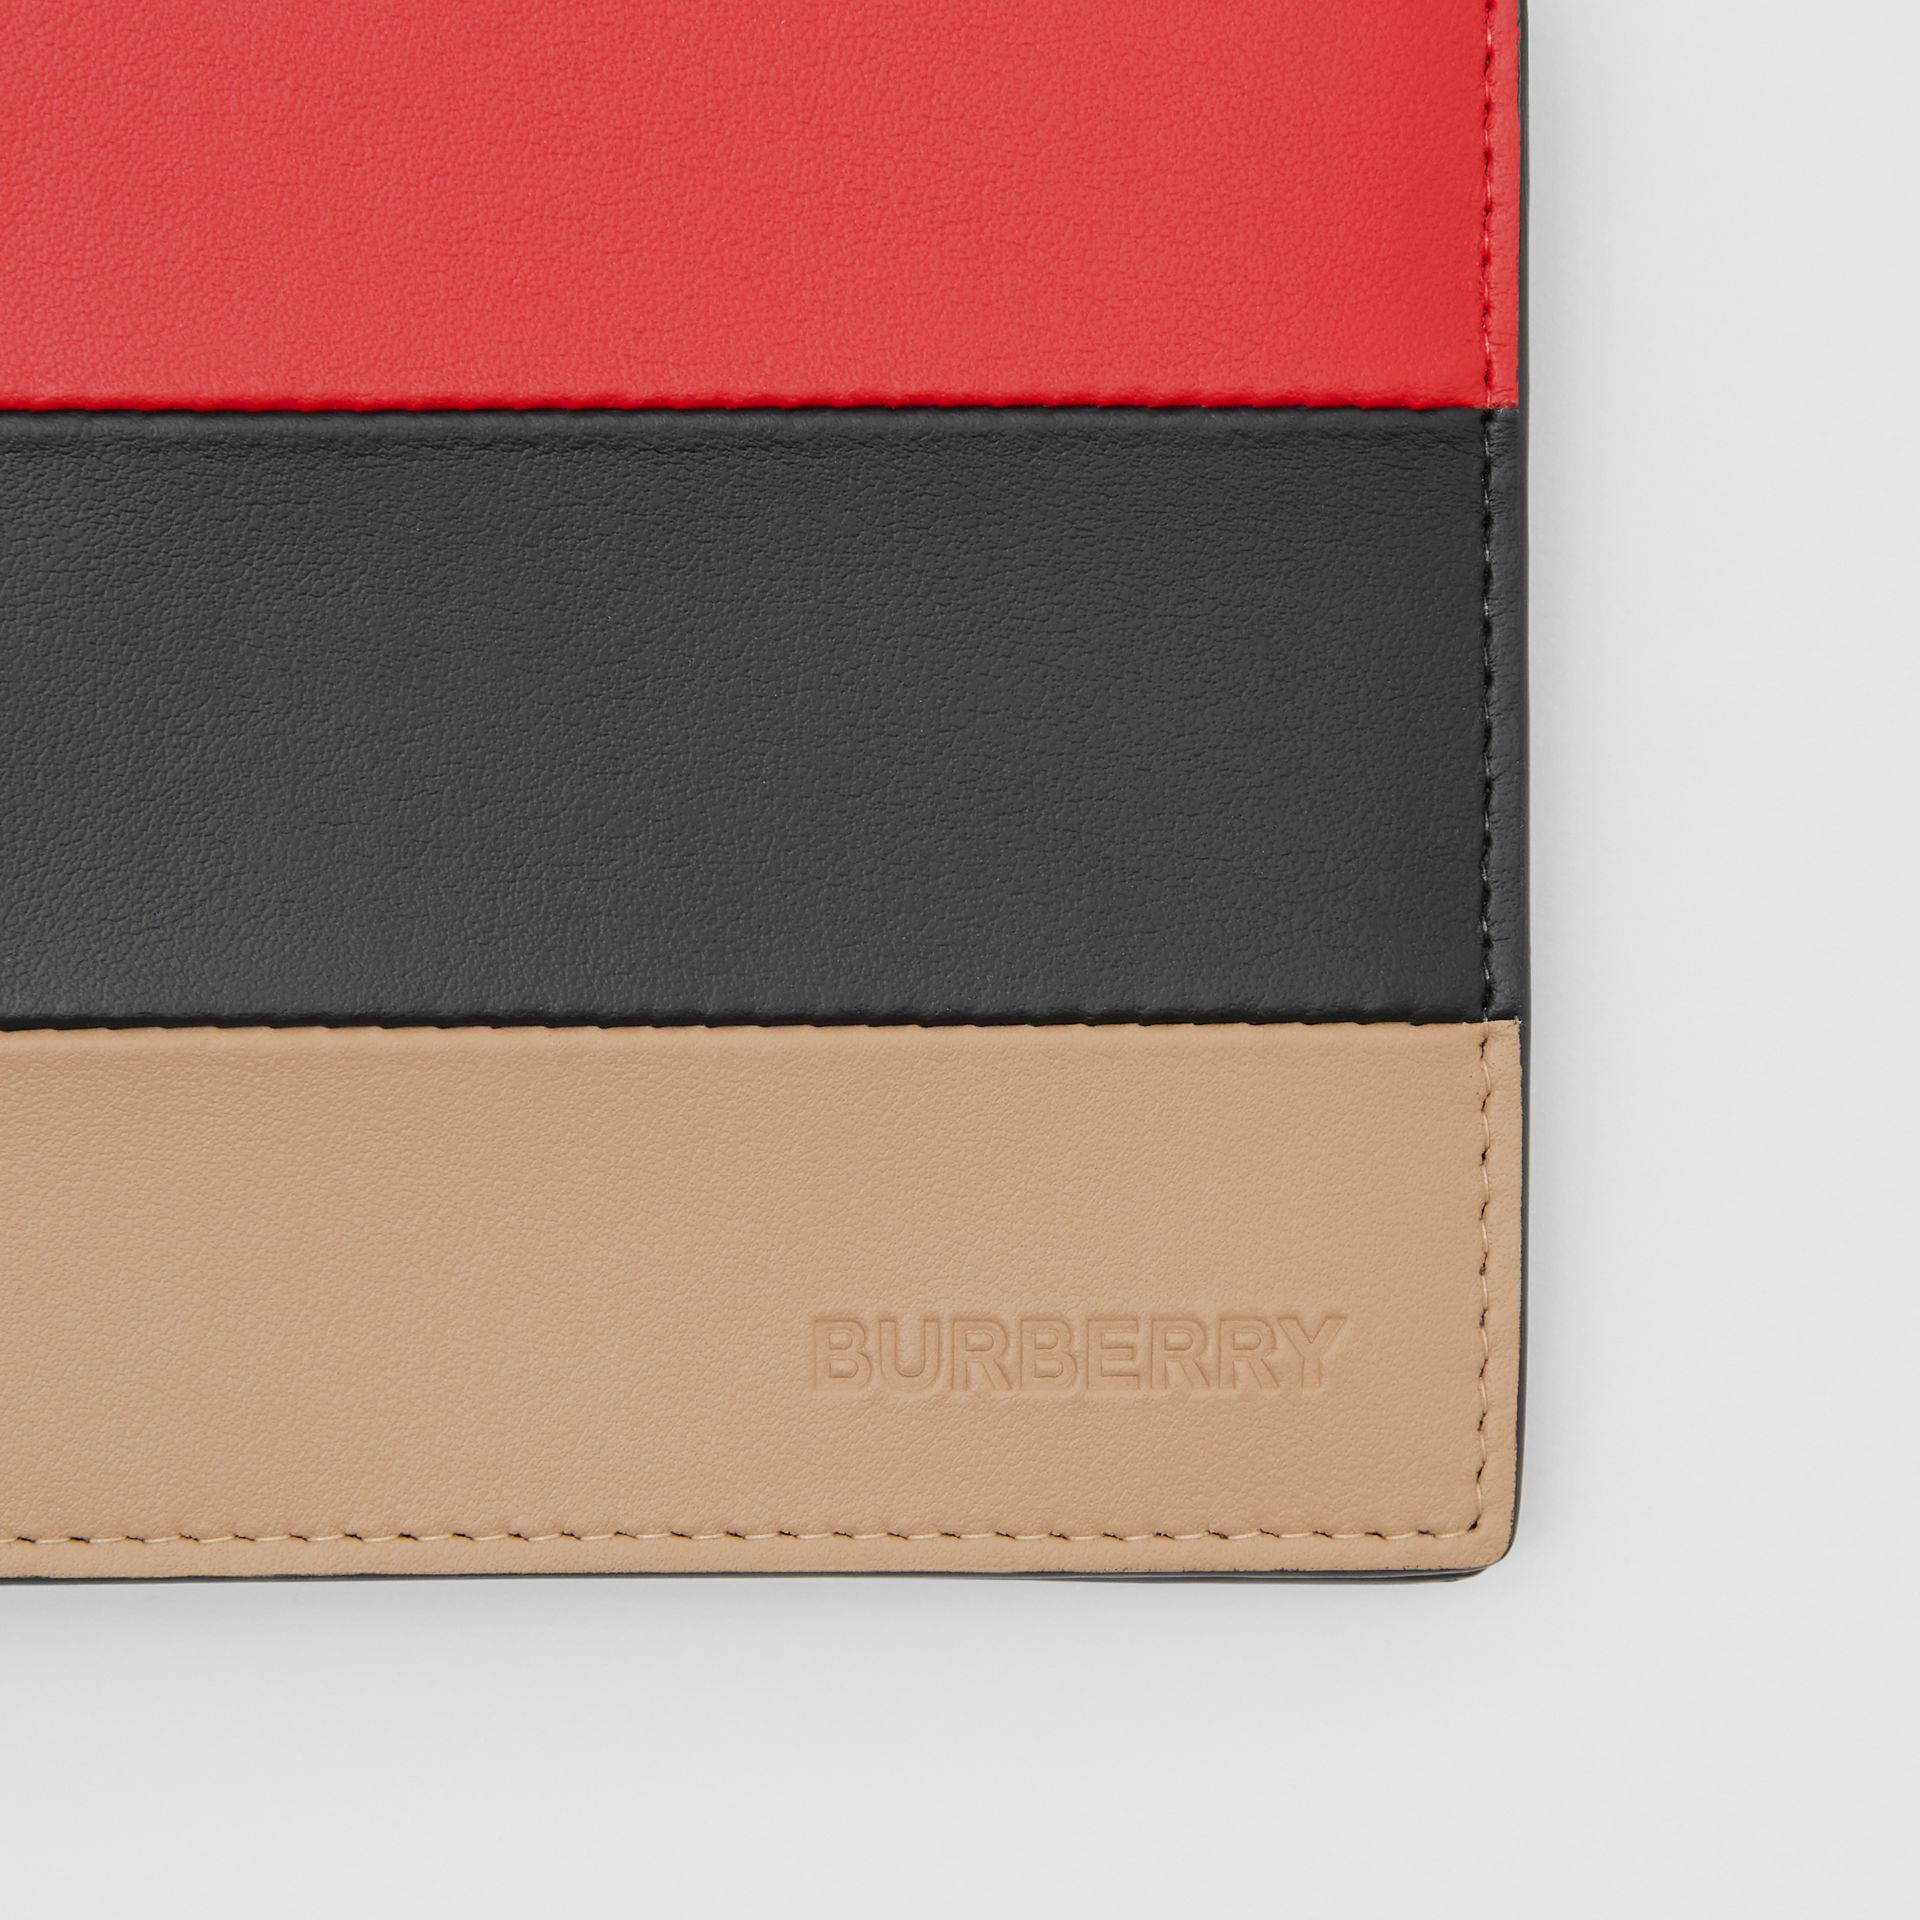 Colour Block Leather International Bifold Wallet in Red/black/beige - Men | Burberry Hong Kong S.A.R - gallery image 1